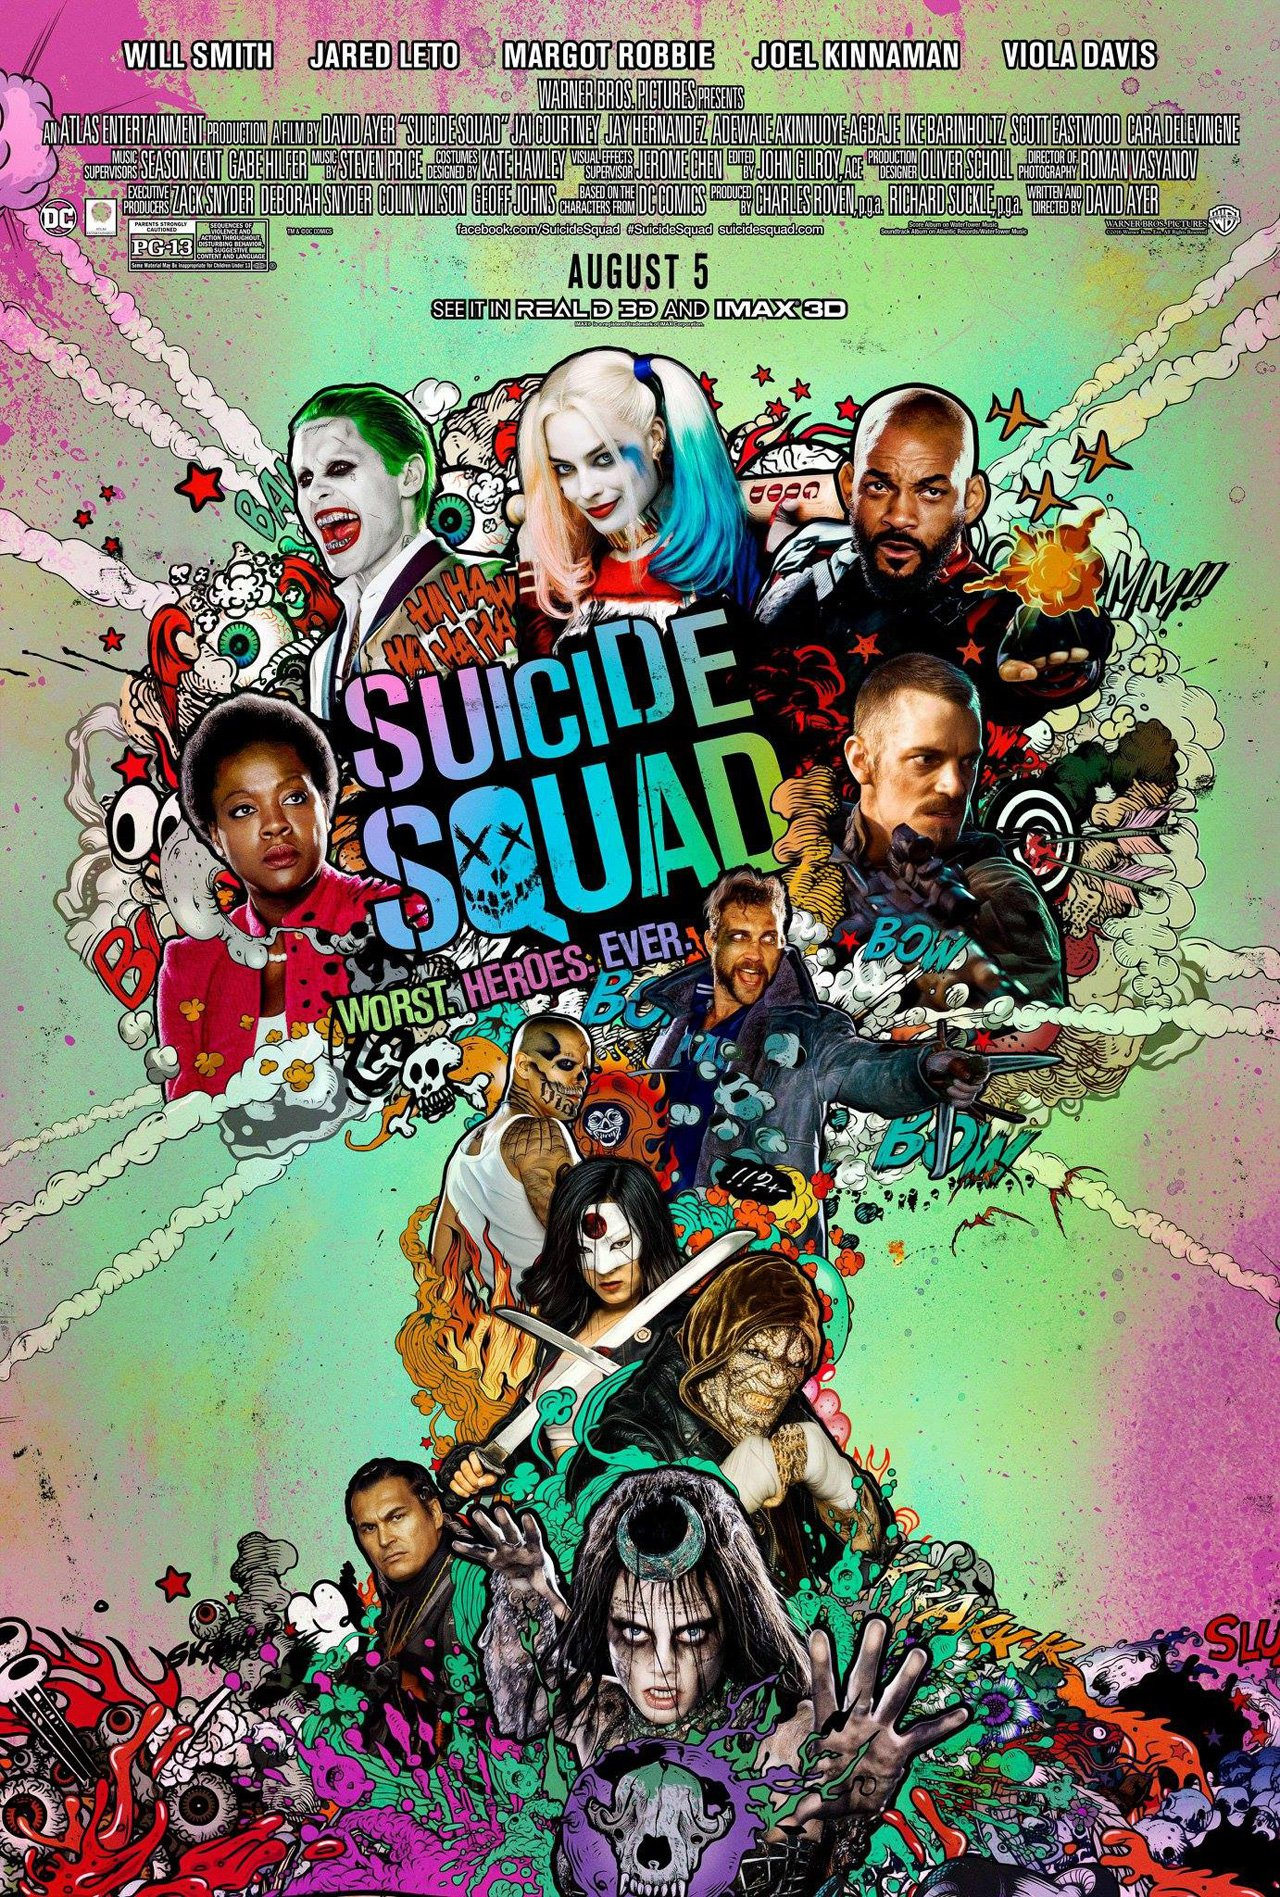 New Suicide Squad International Trailer Revealed 1